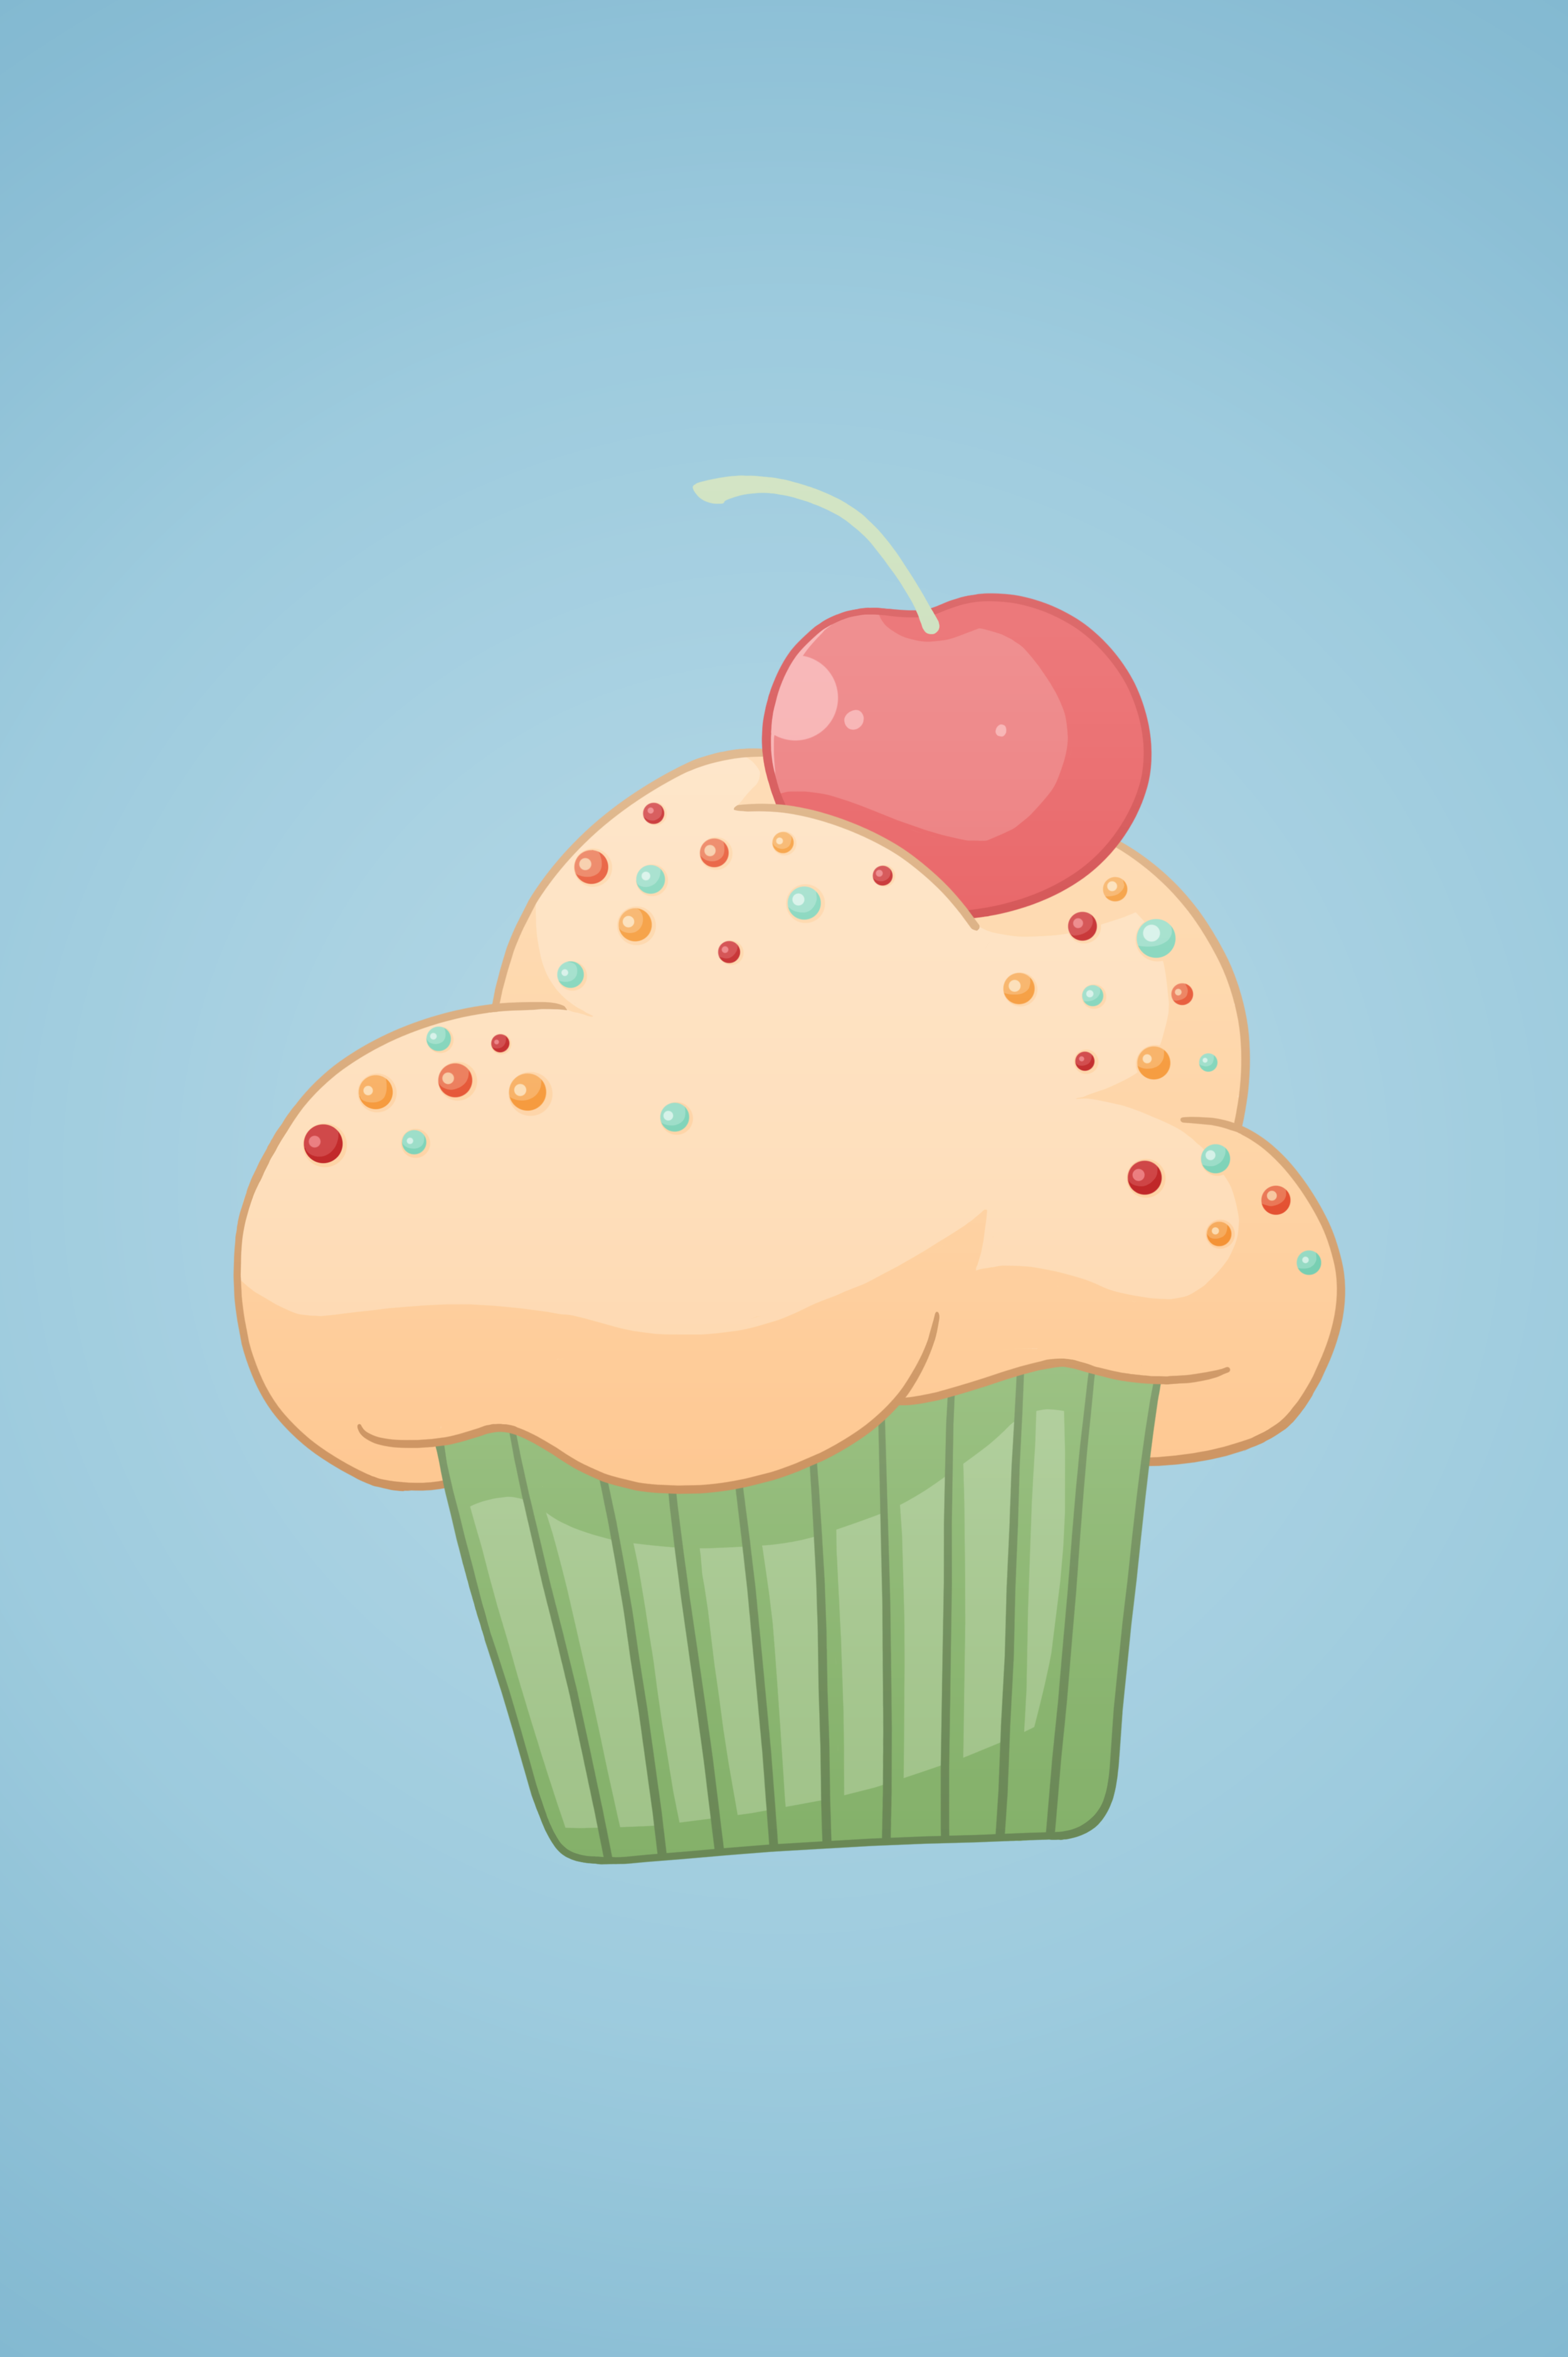 cupcake06Colour.png